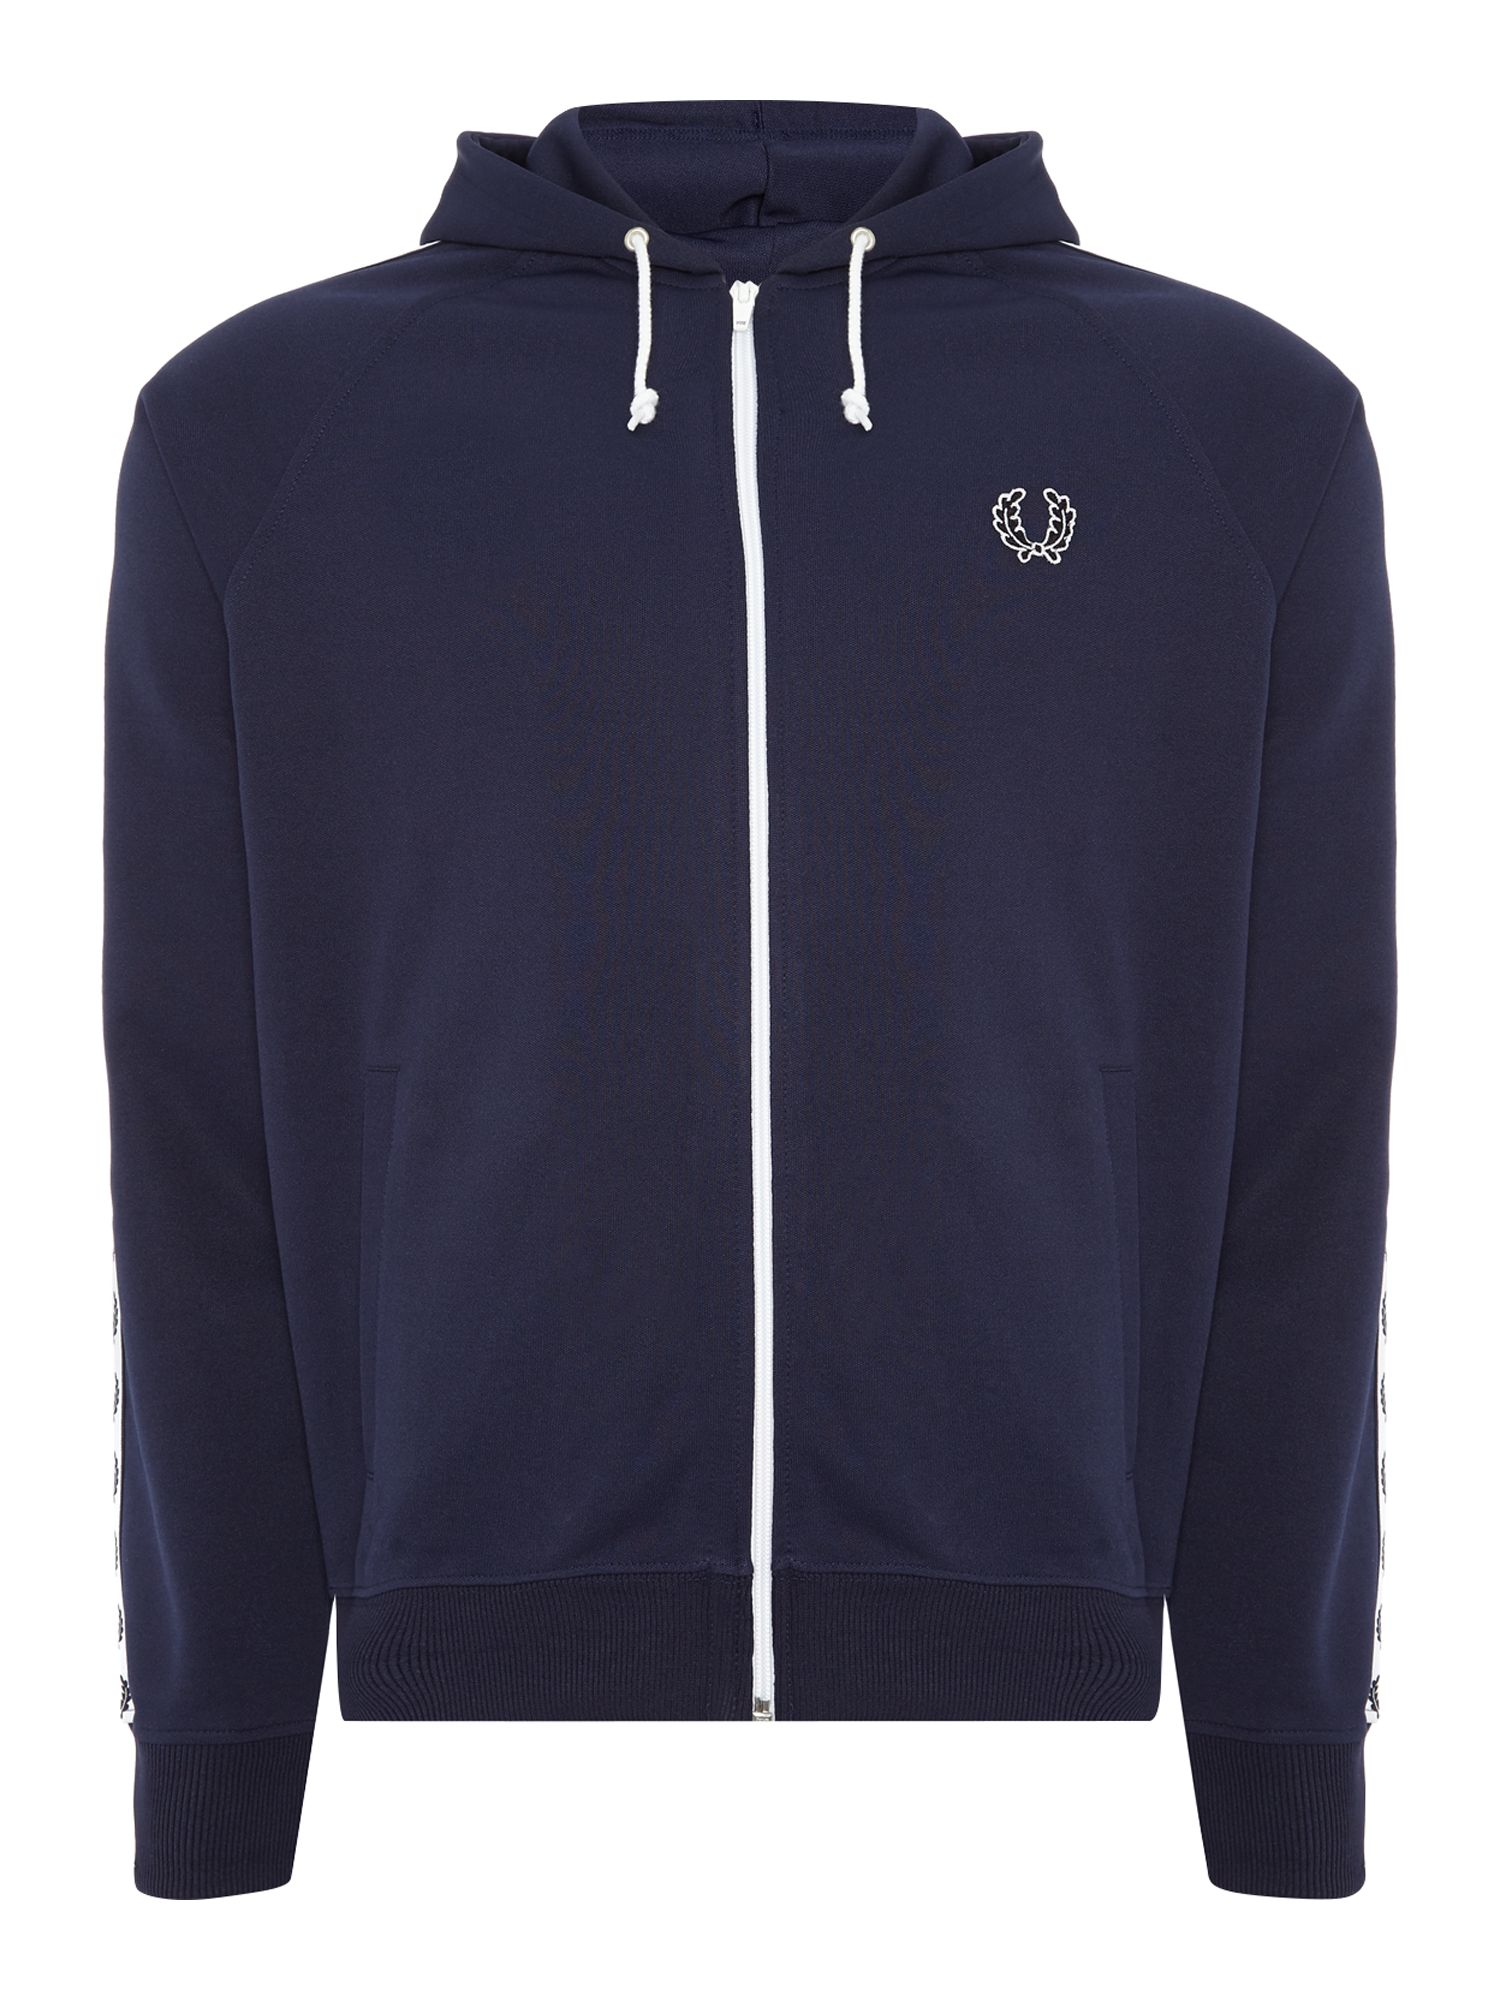 Mens Fred Perry Taped hooded track jacket Navy